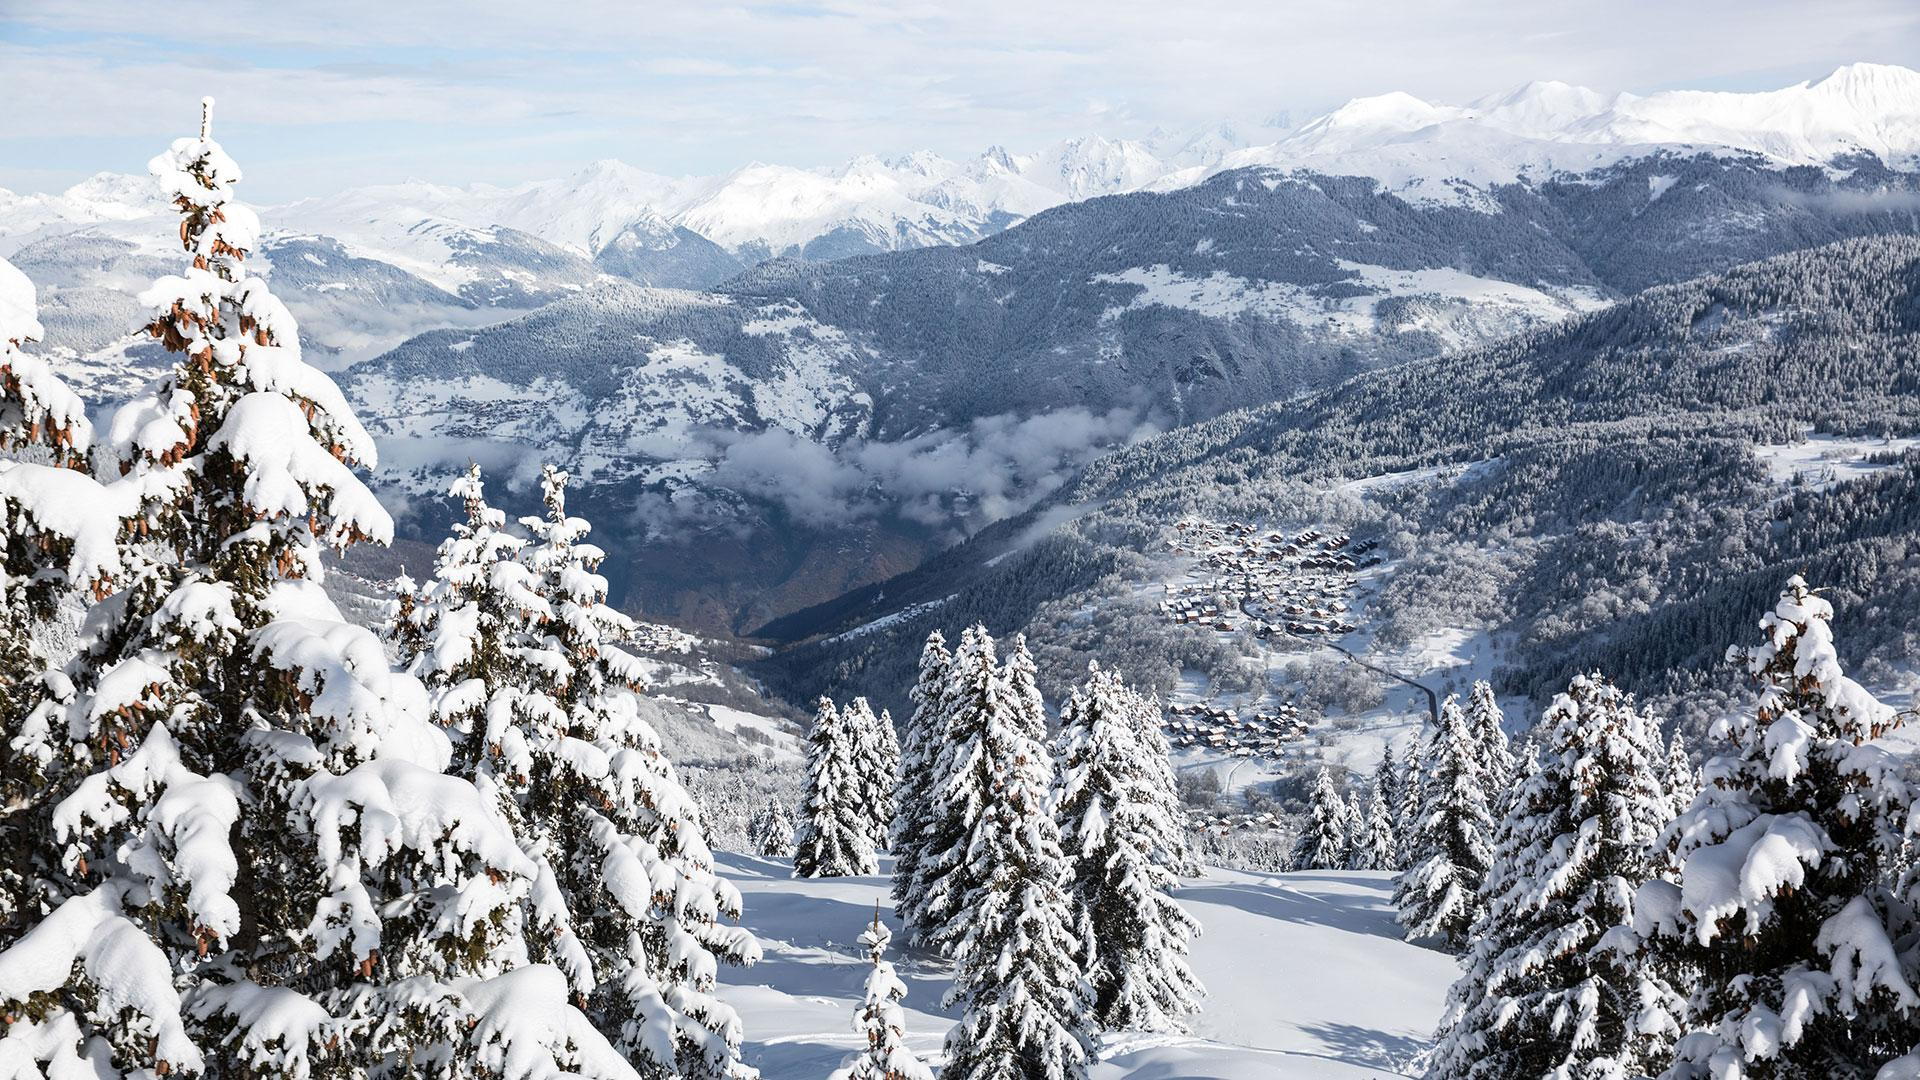 My bad weather ski day in Les 3 Vallées